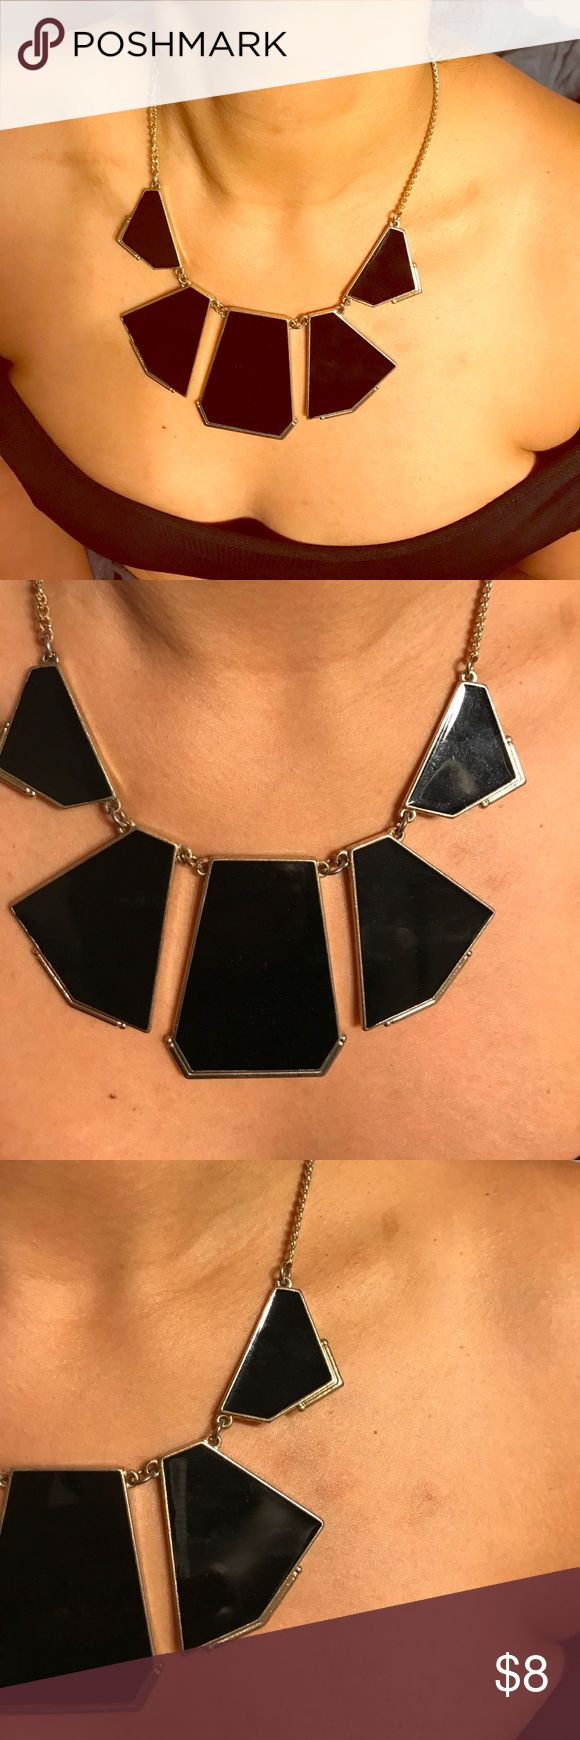 Black and Gold accent necklace Black and Gold Accent Necklace Accessories